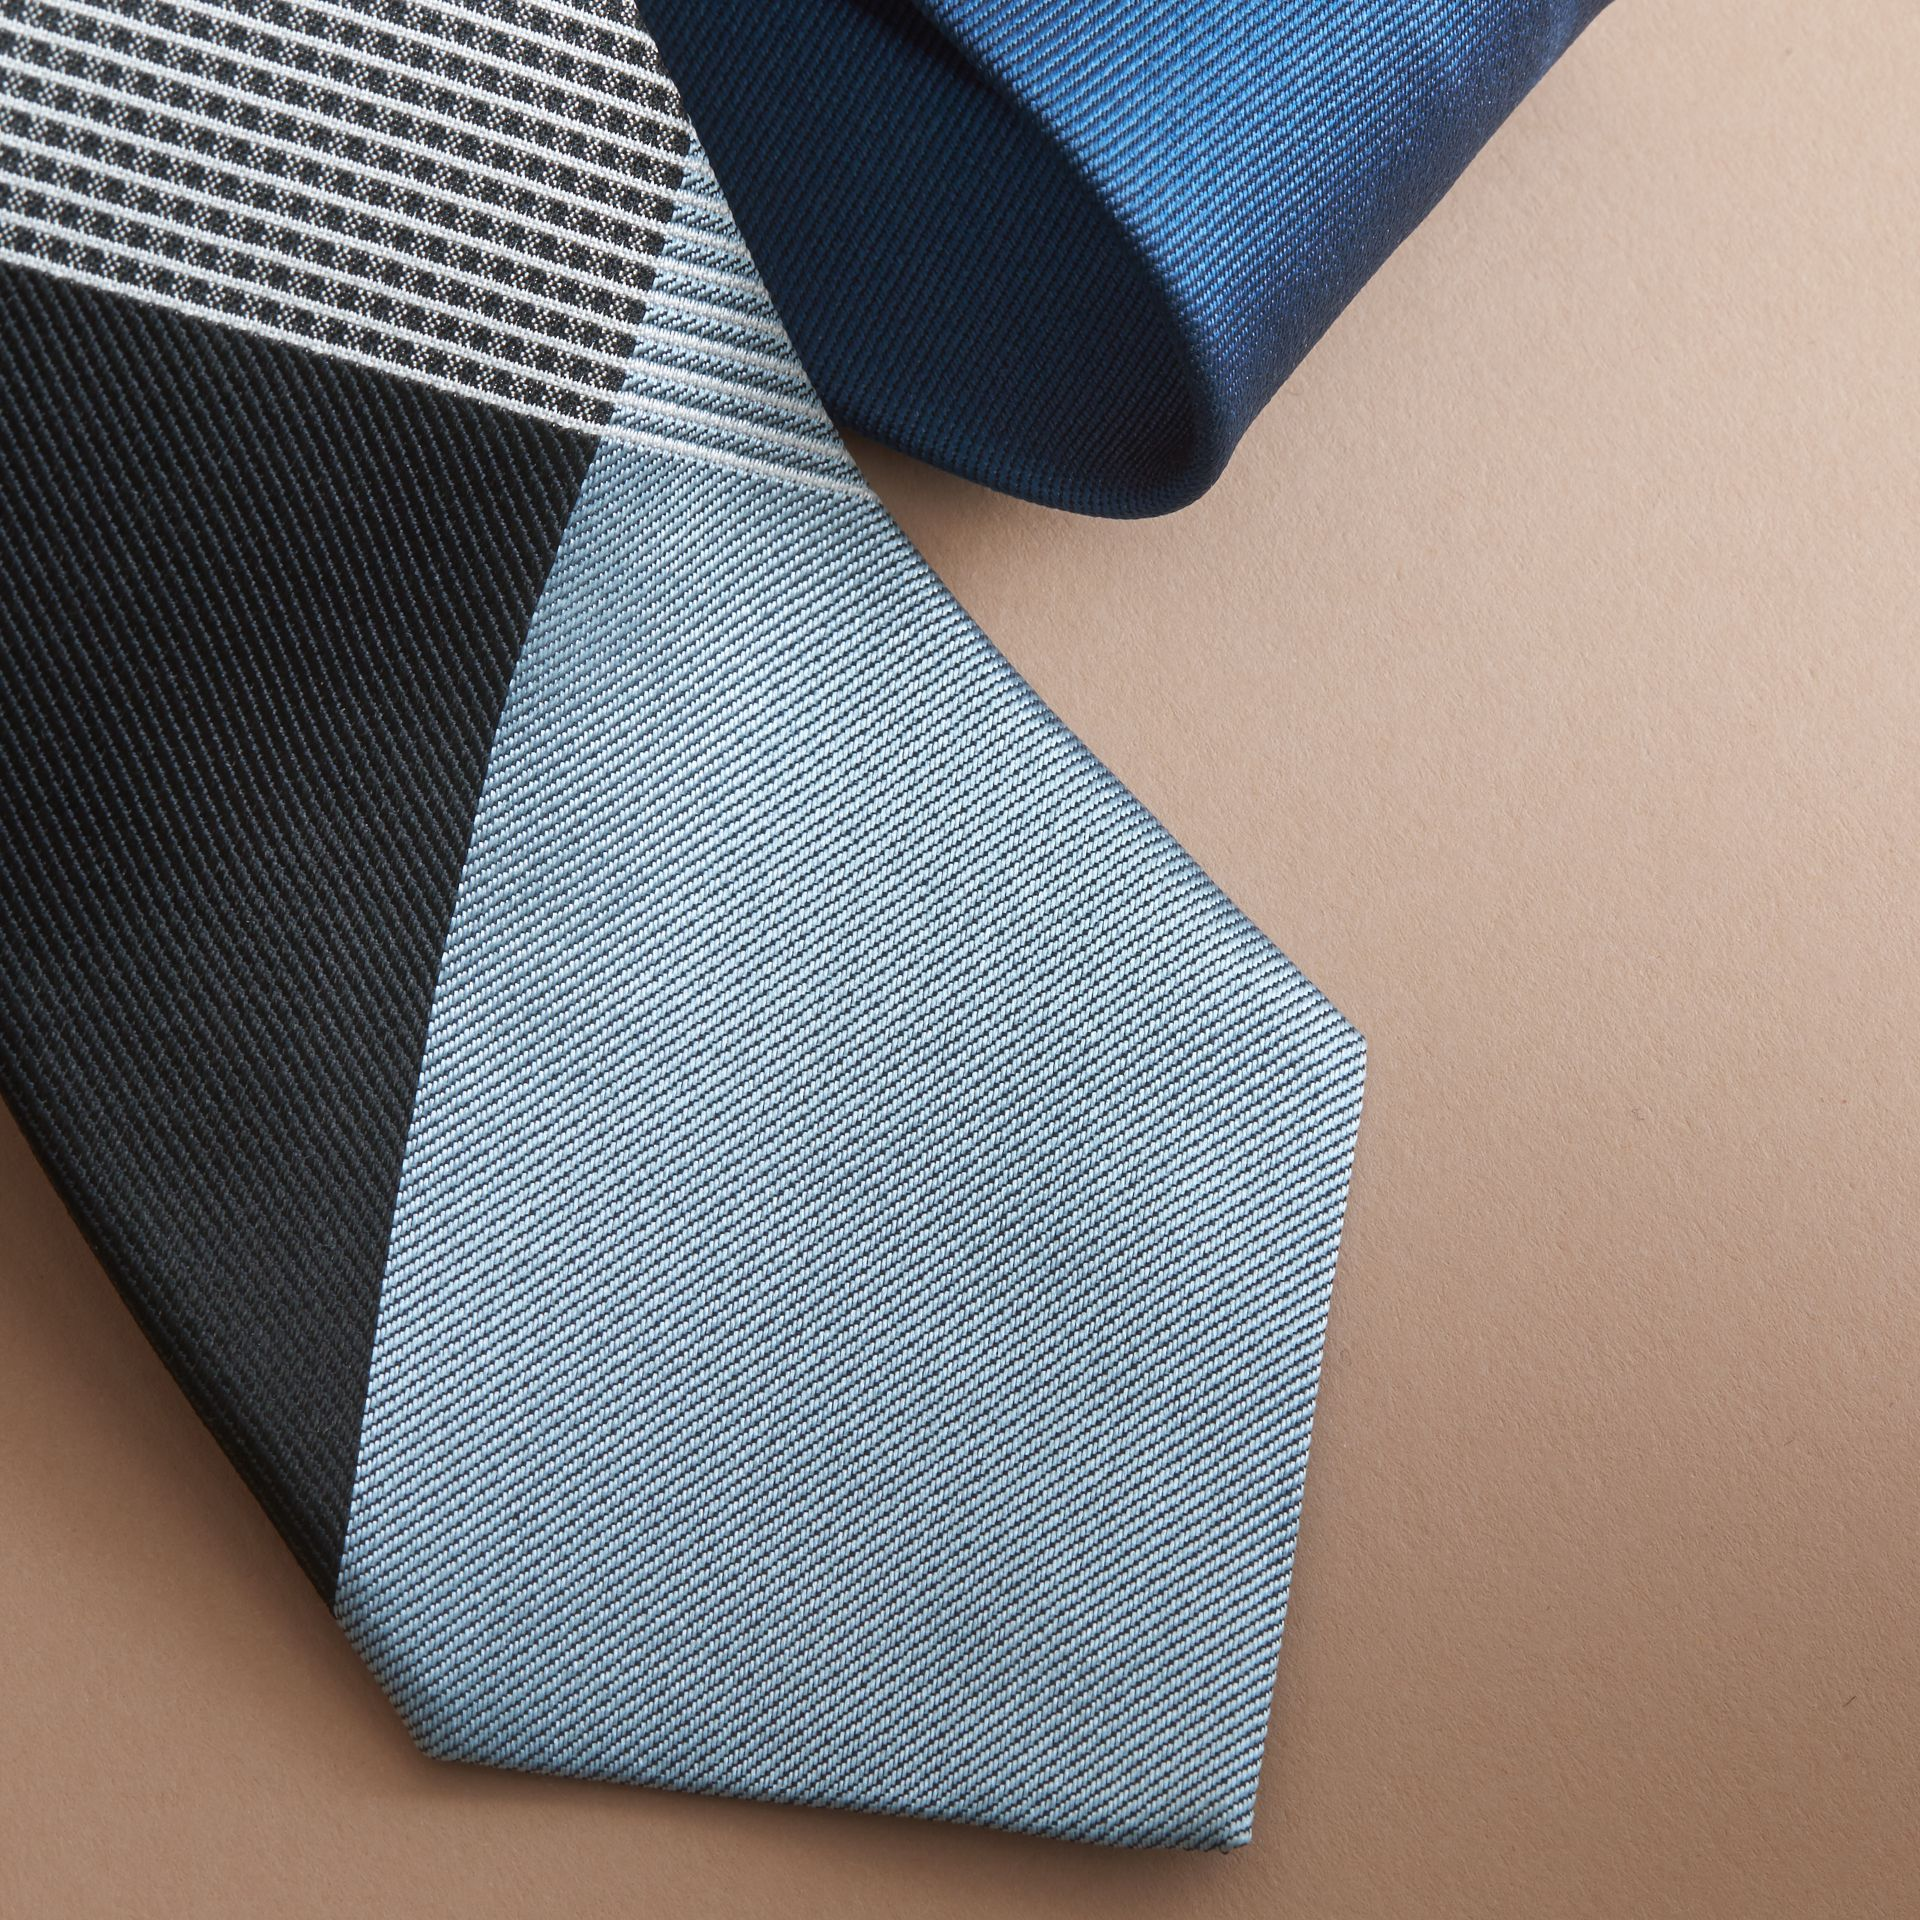 Modern Cut Gingham Check Silk Twill Jacquard Tie in Brilliant Navy - Men | Burberry Hong Kong - gallery image 2